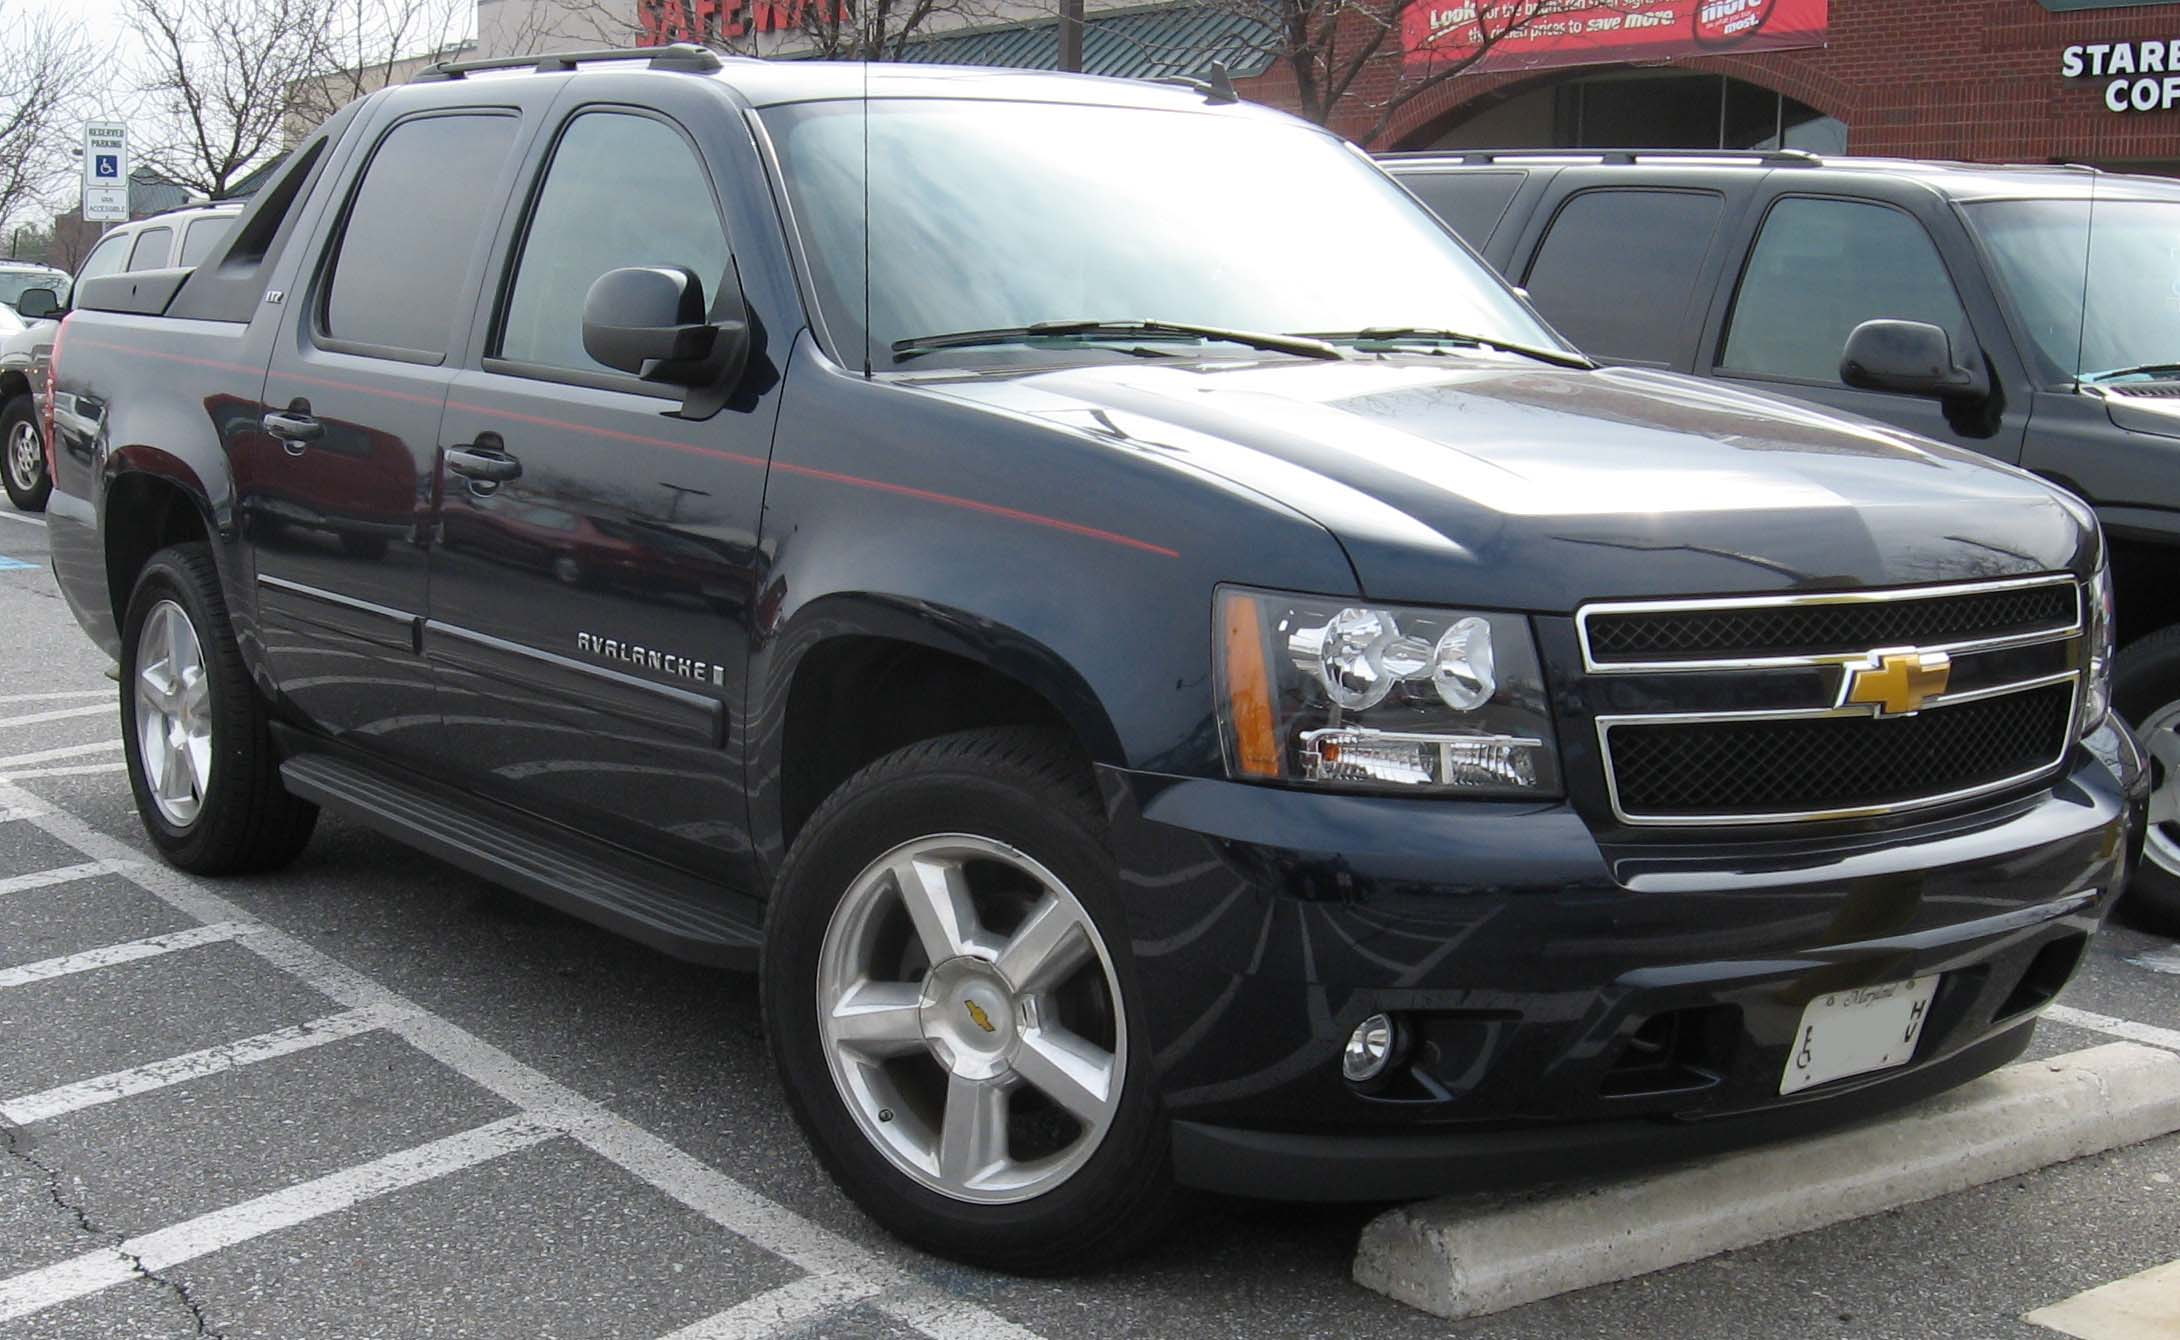 Chevrolet Avalanche Wikipedia >> File:07-Chevrolet-Avalanche-LT.jpg - Wikimedia Commons